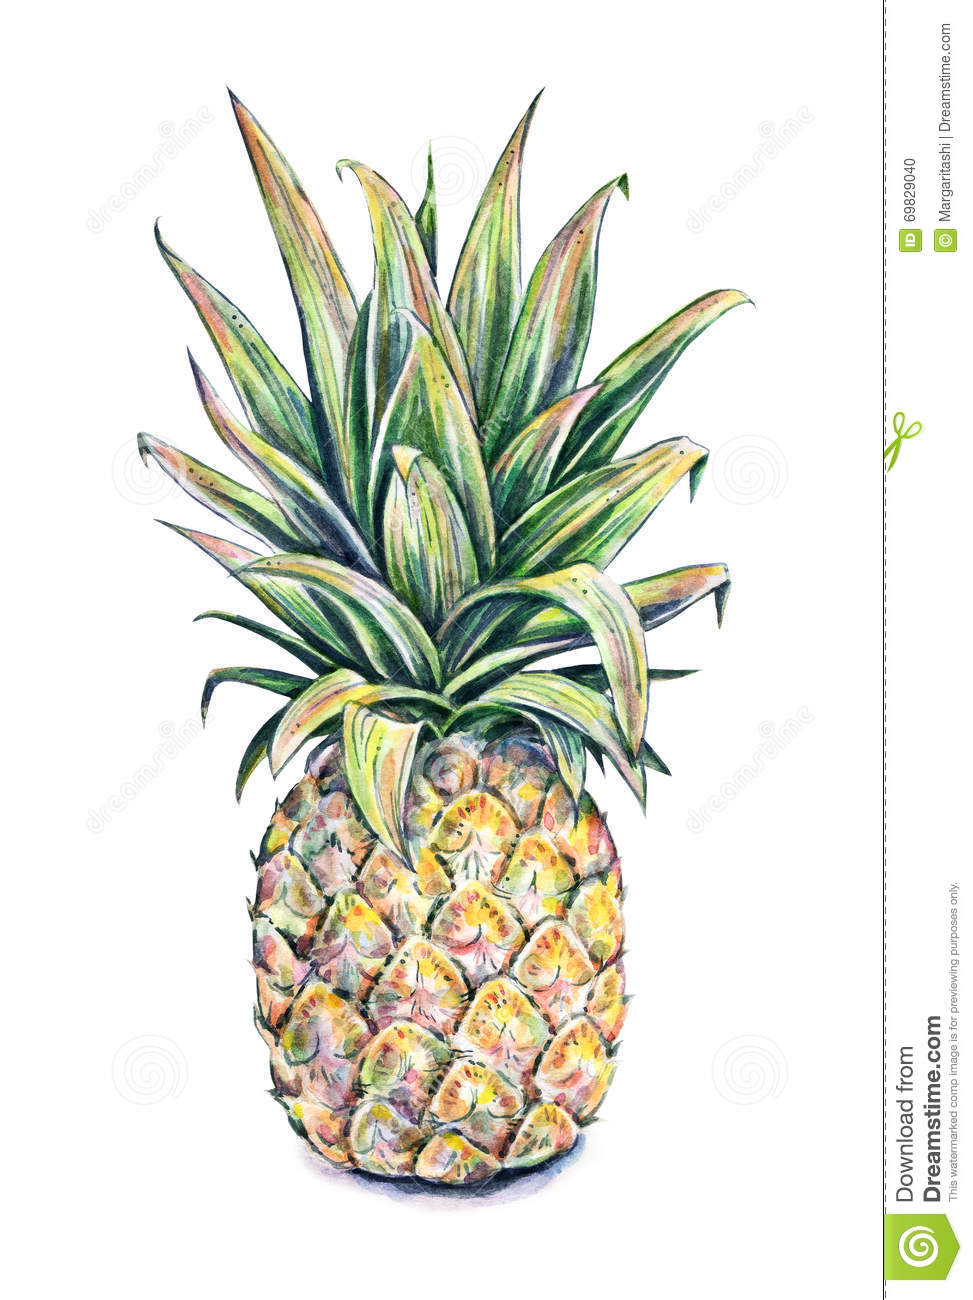 Colourful Iphone X Wallpaper Pineapple On A White Background Watercolor Colourful